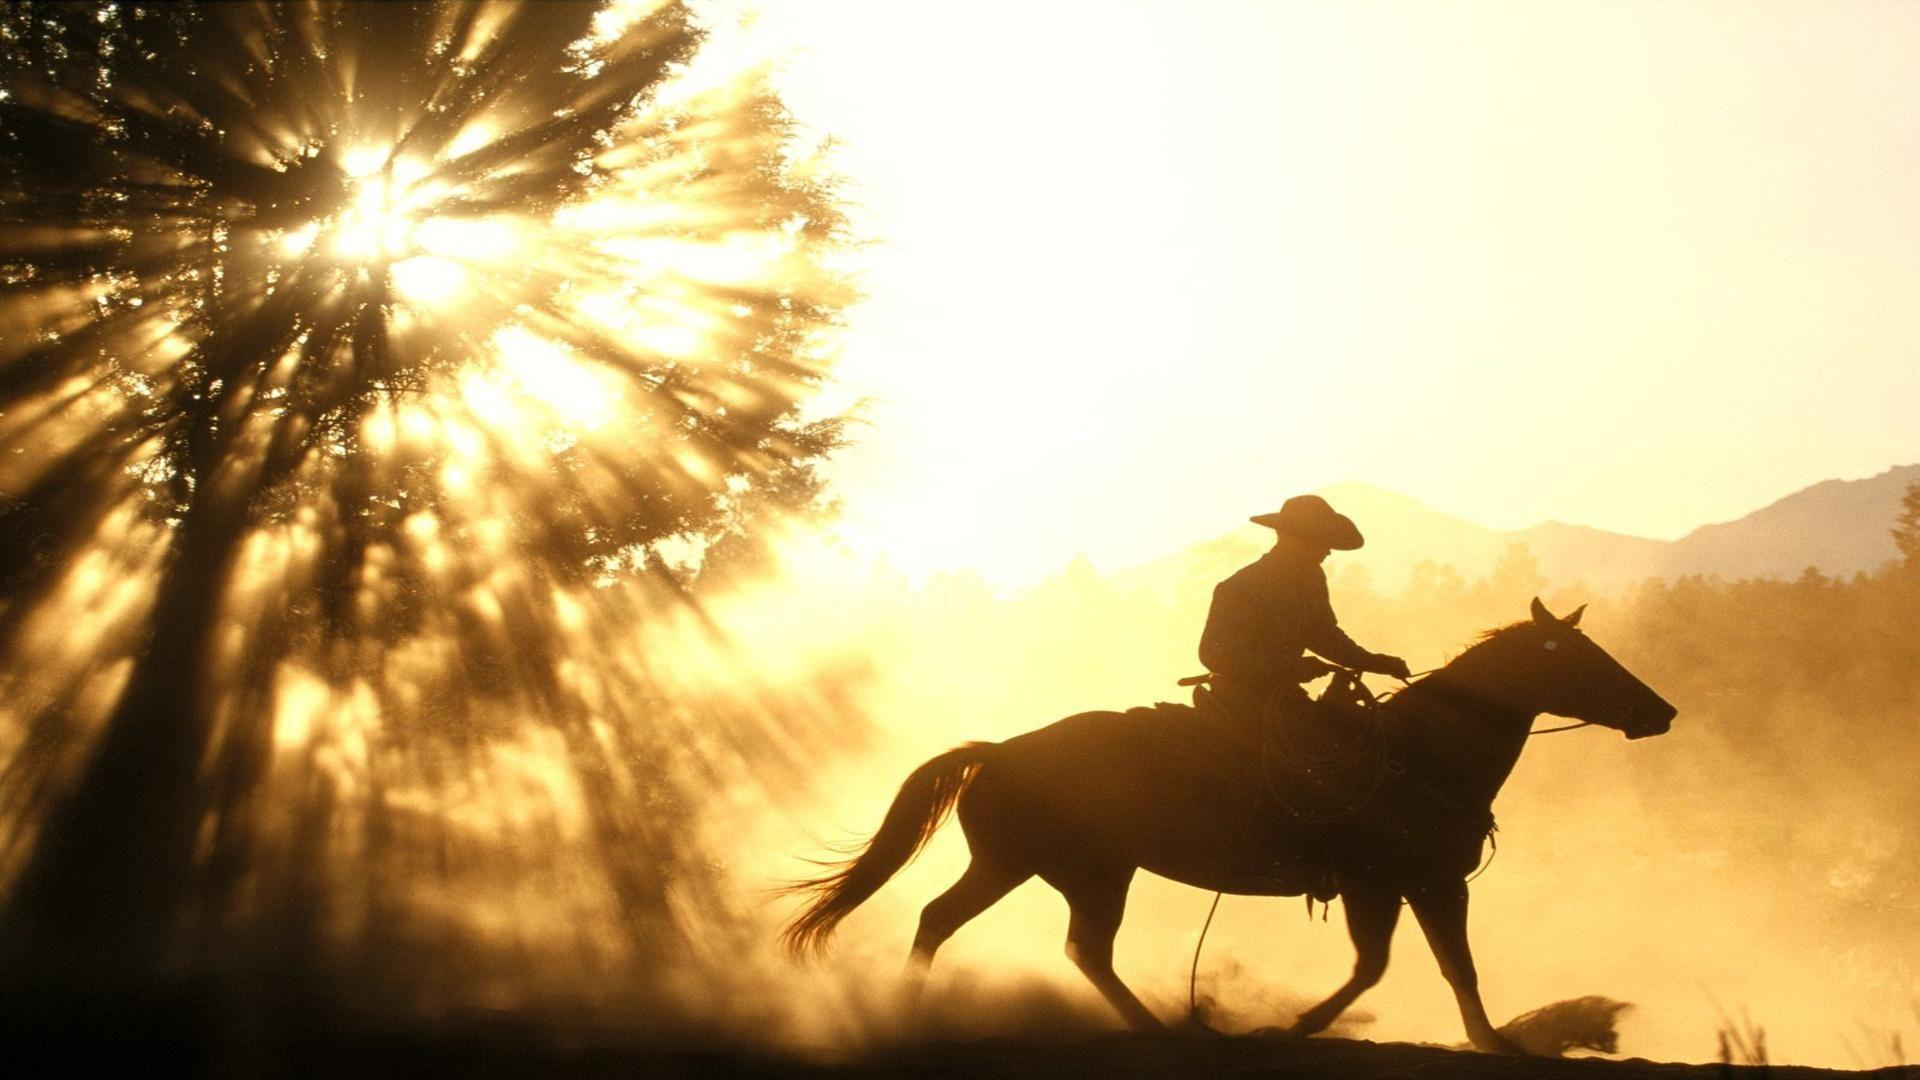 cowgirl silhouett wallpaper - photo #9